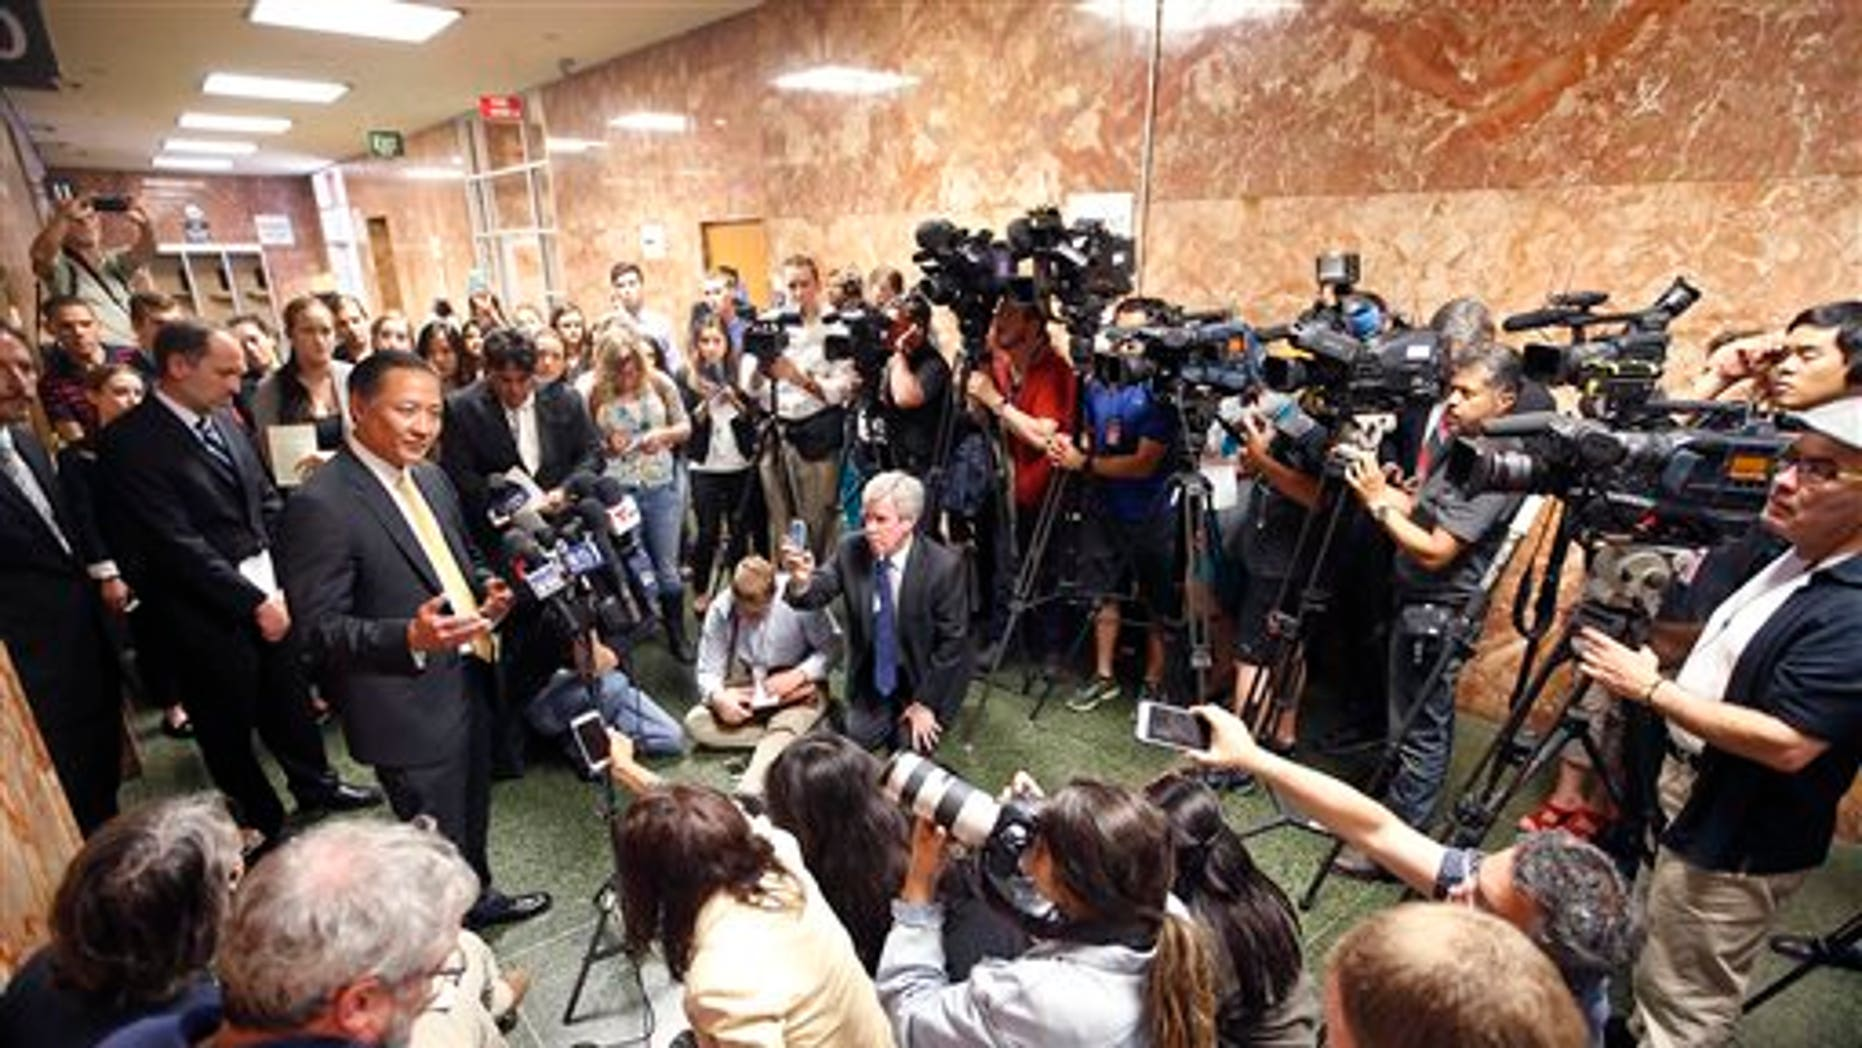 San Francisco Public Defender Jeff Adachi, left, talks to members of the media after Francisco Sanchez's arraignment Tuesday, July 7, 2015, in San Francisco.